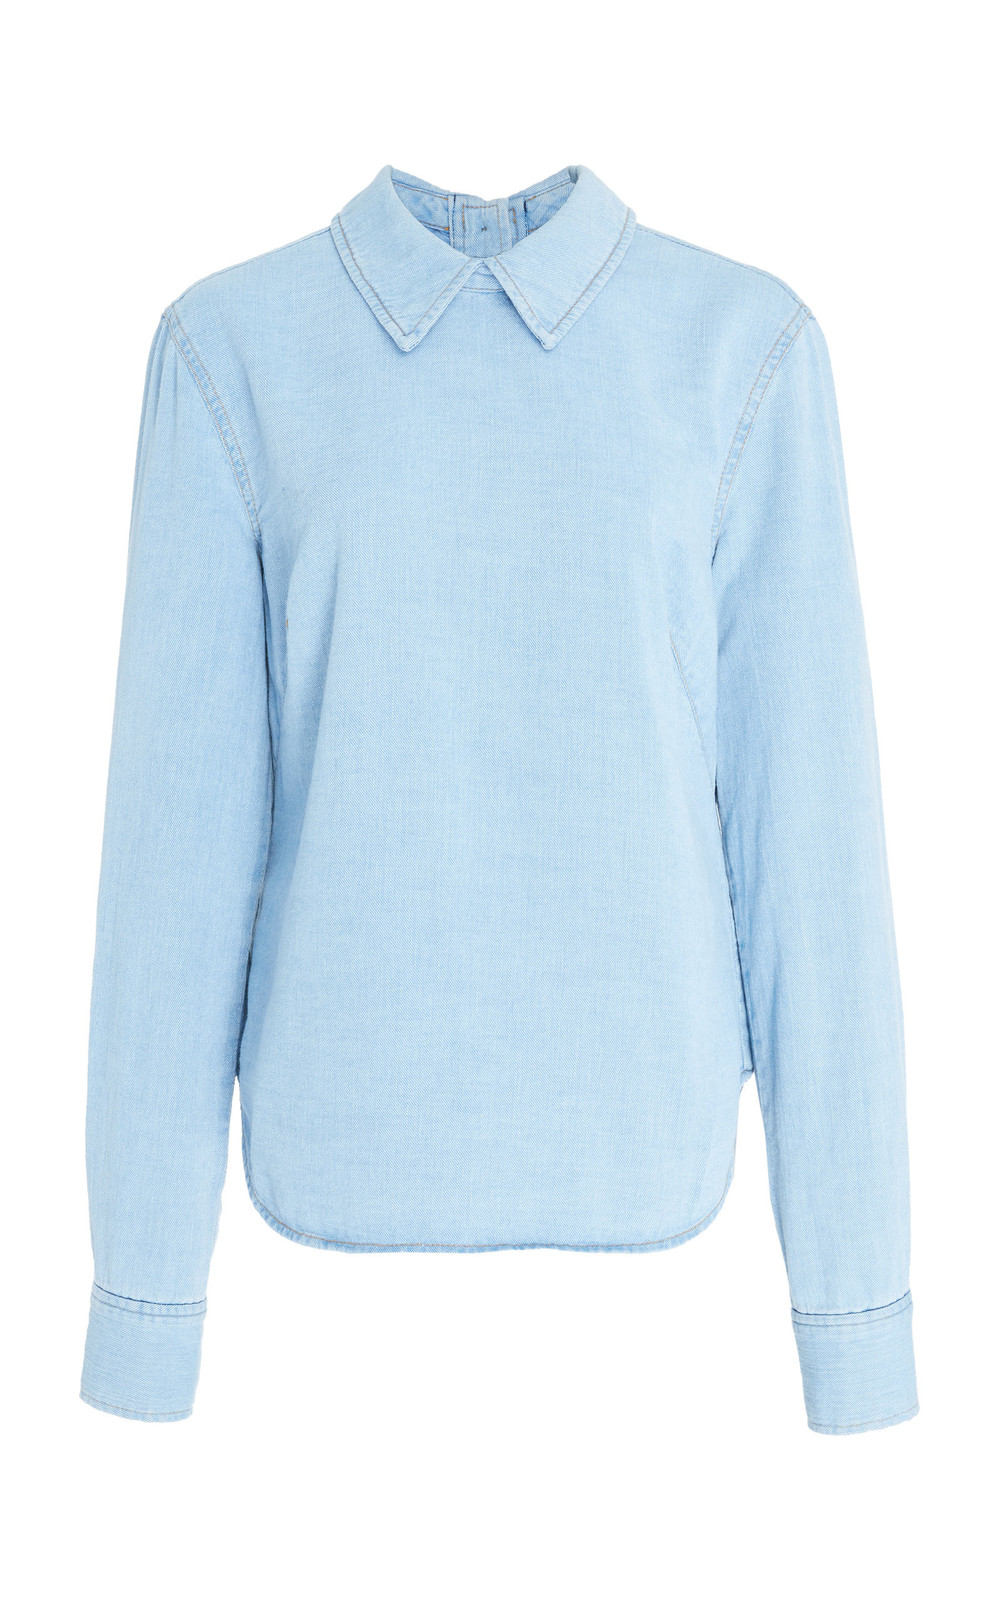 Rachel Comey Cotton-Chambray Top in blue